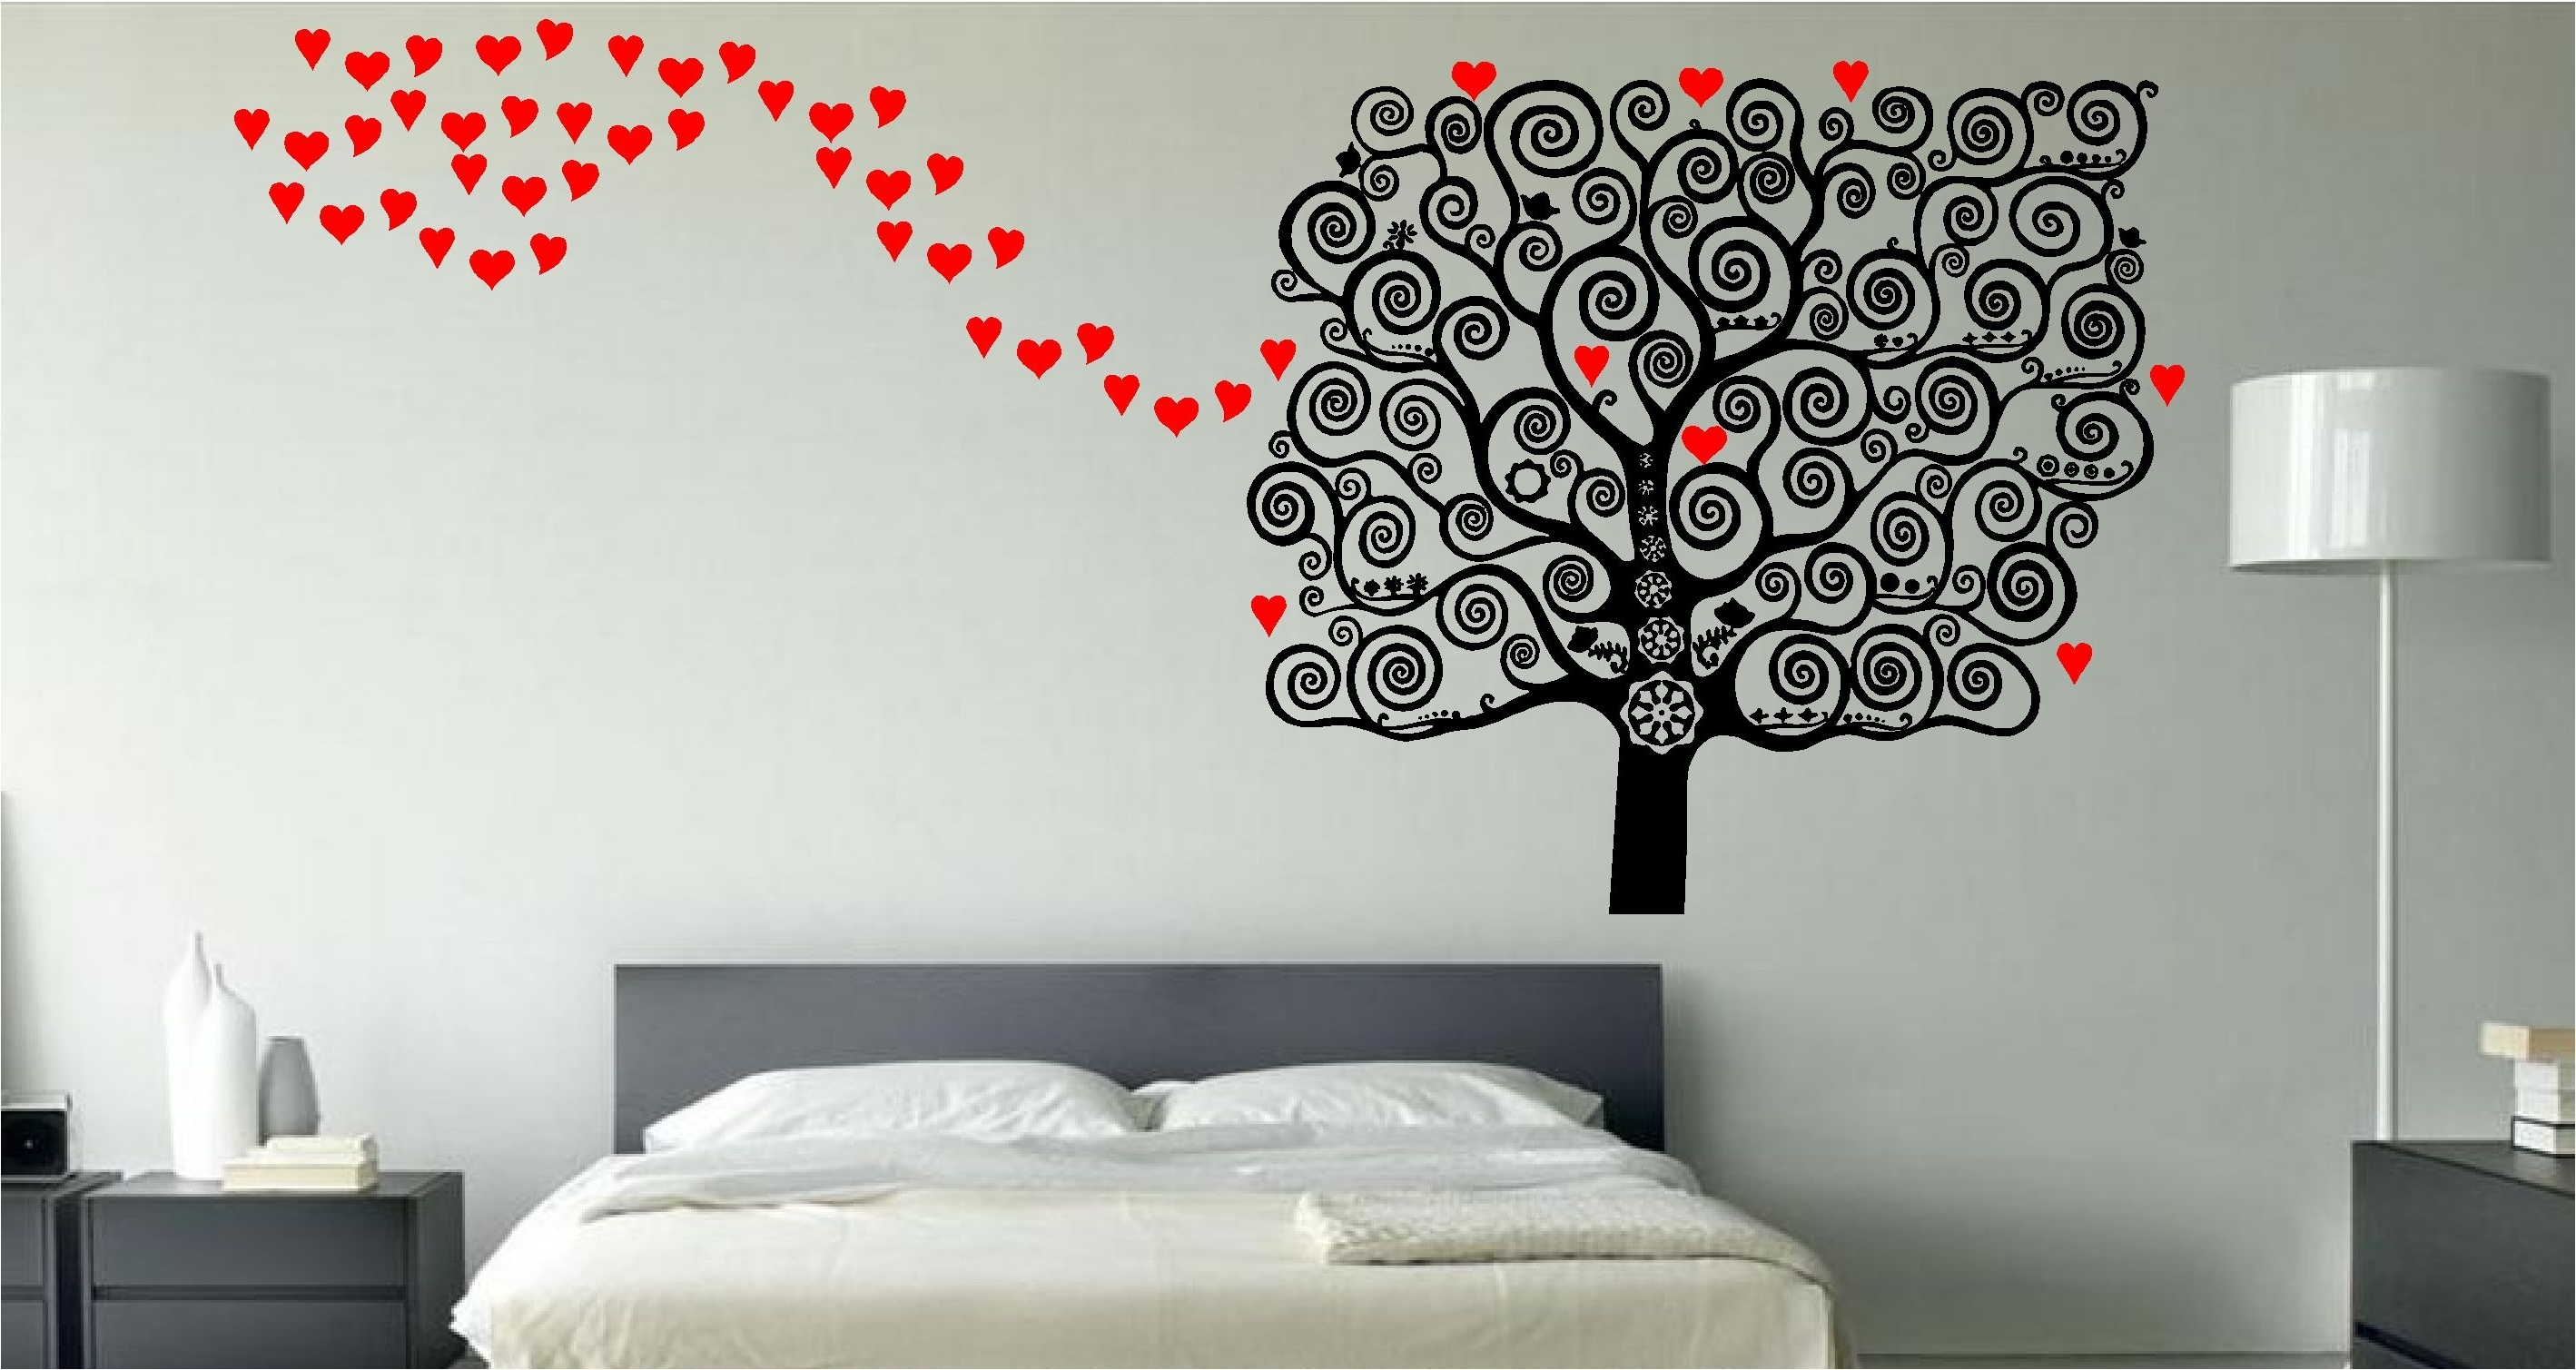 2018 Bedroom Wall Art For Bedroom : Abstract Wall Art Metal Wall Art Decor Wall Art Decals (View 10 of 15)